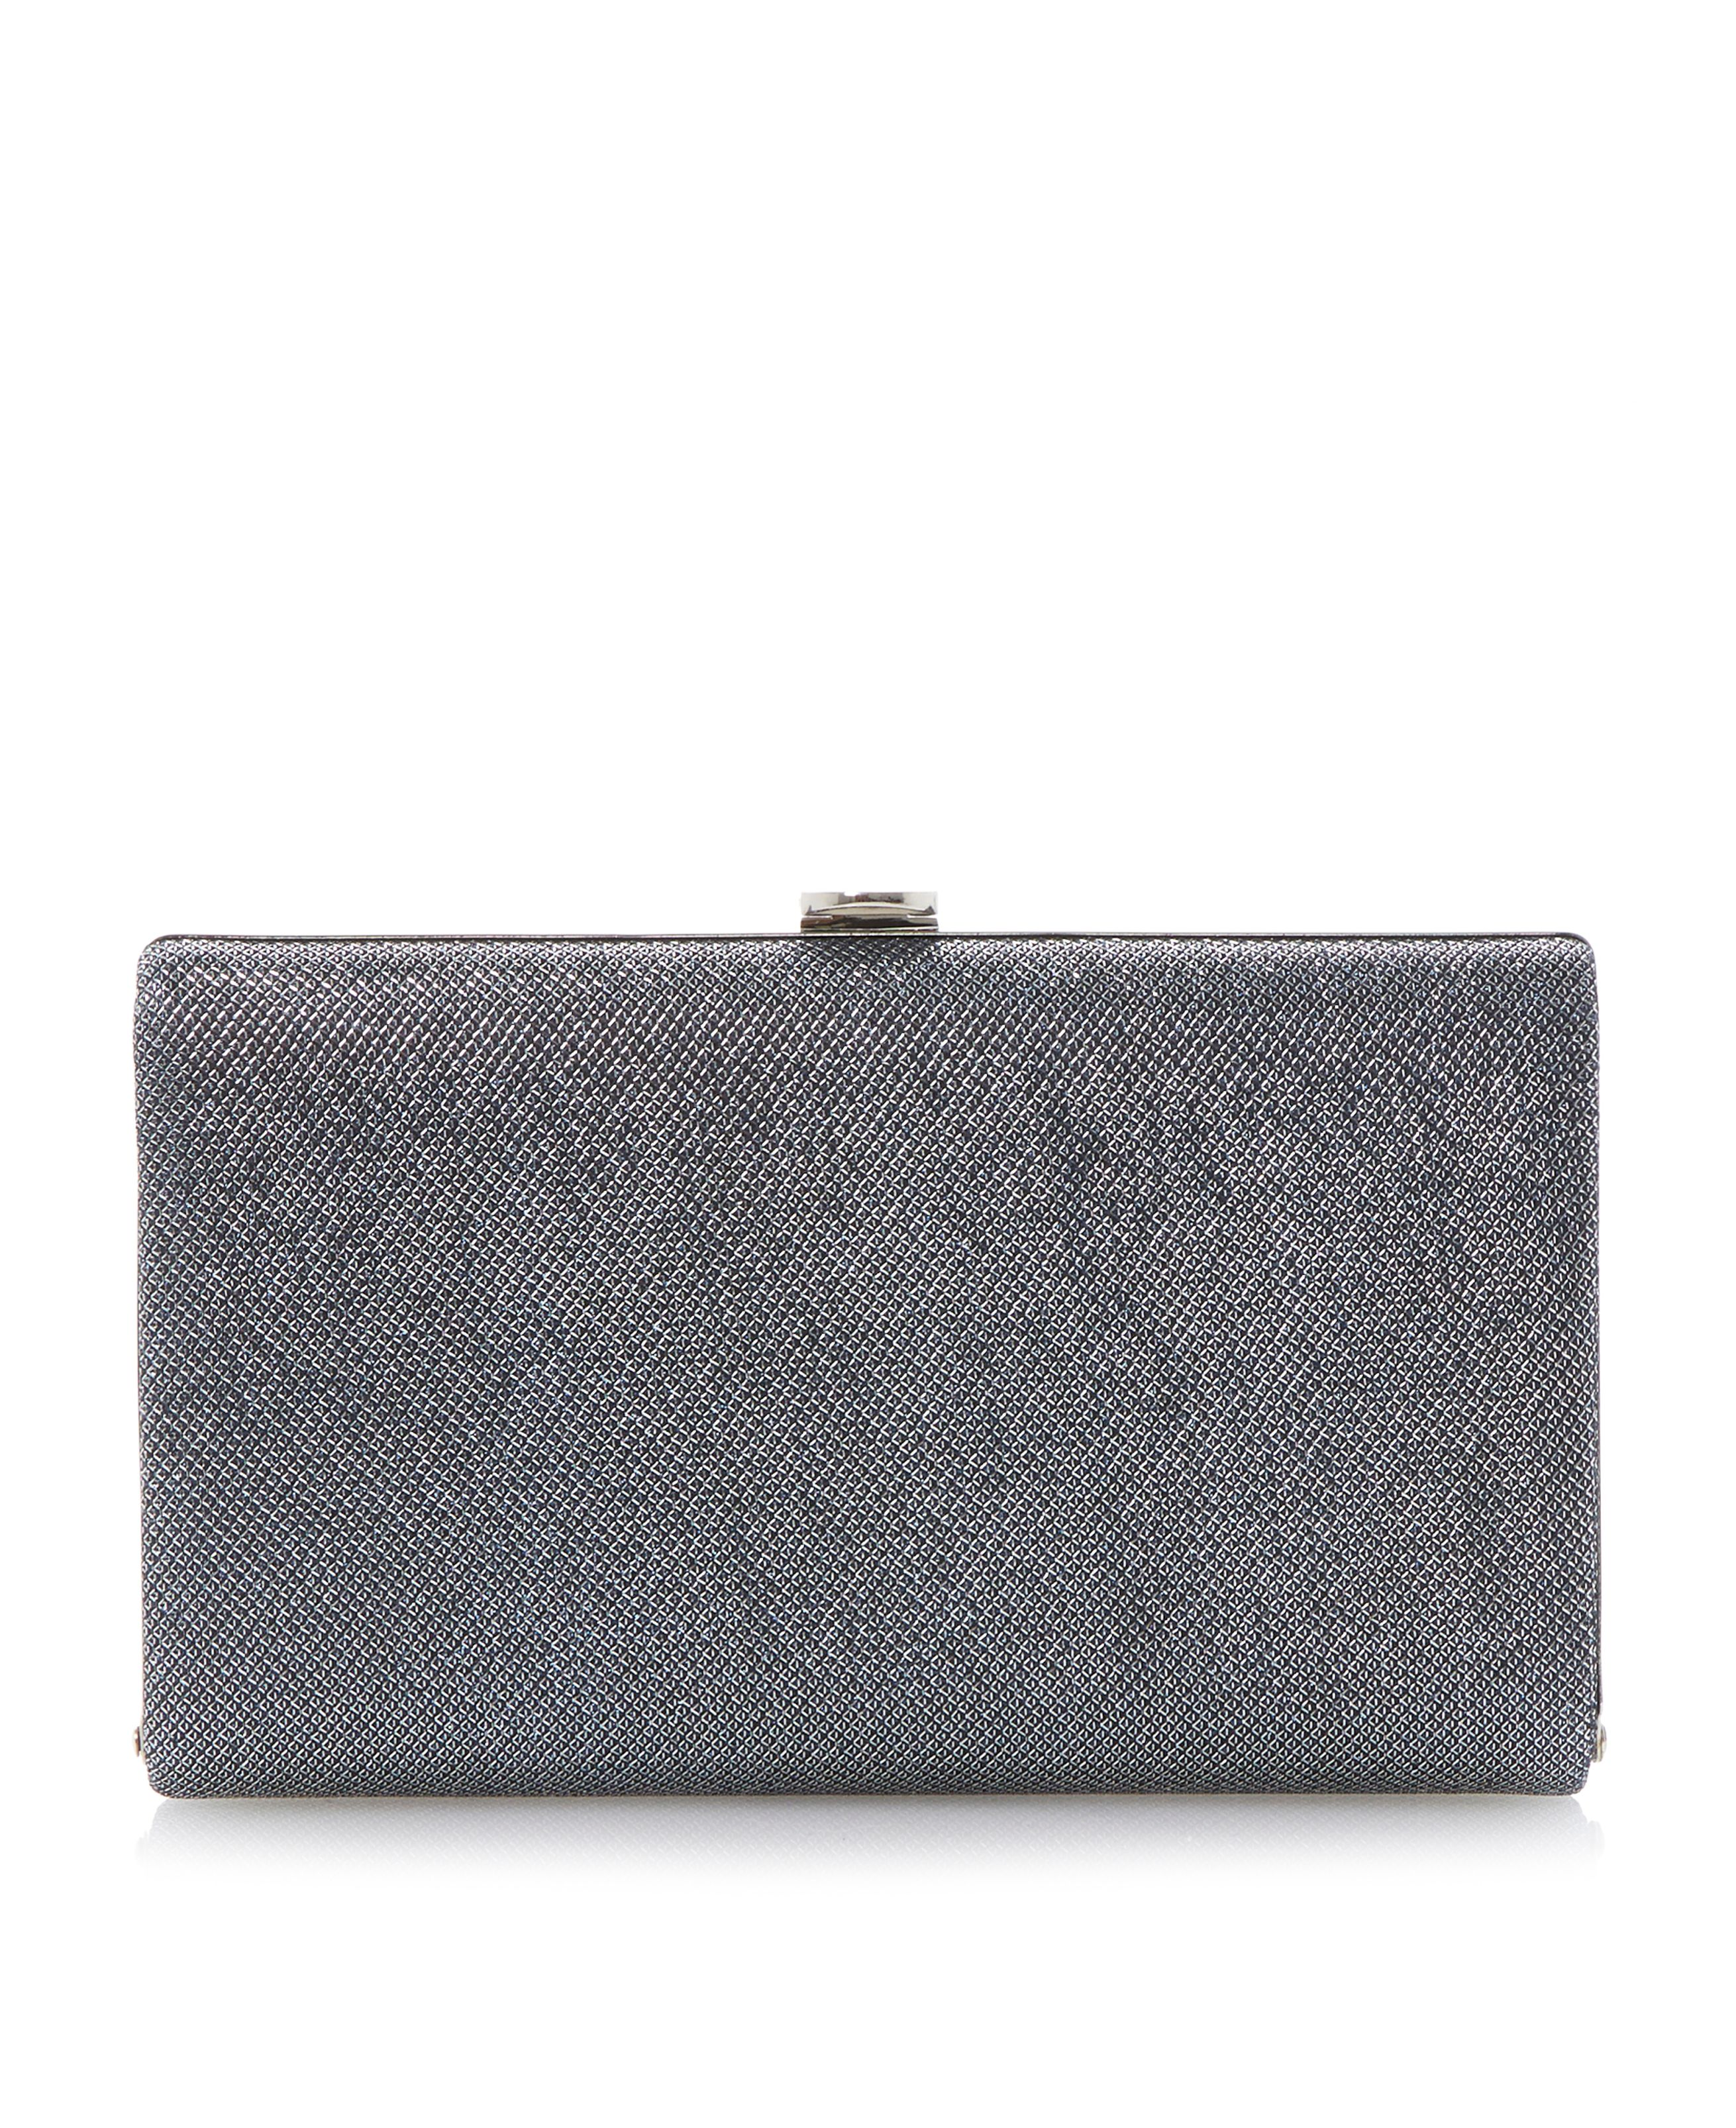 Burex lurex sparkle clutch